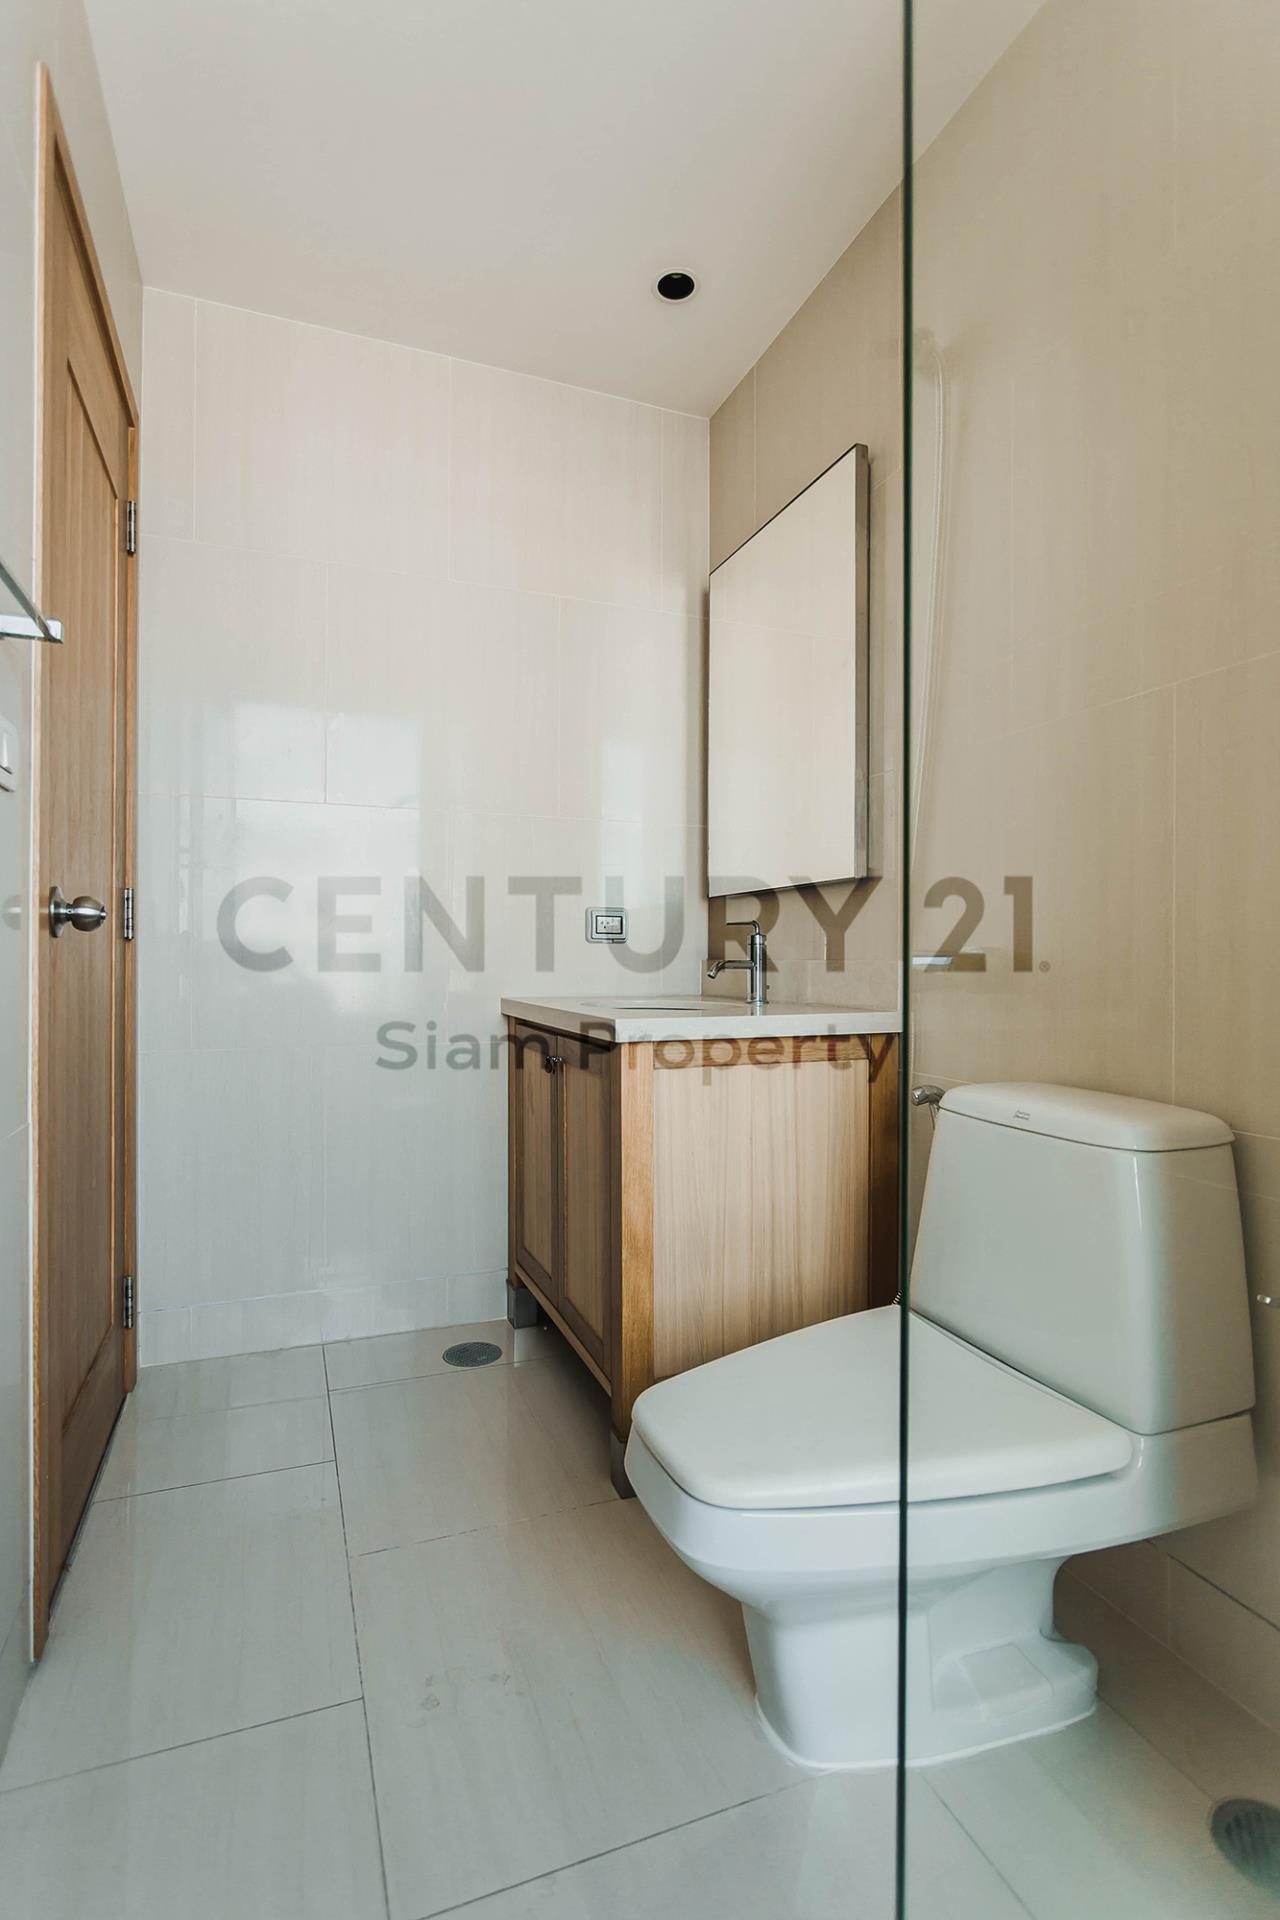 Century21 Siam Property Agency's The Emporio Place 11